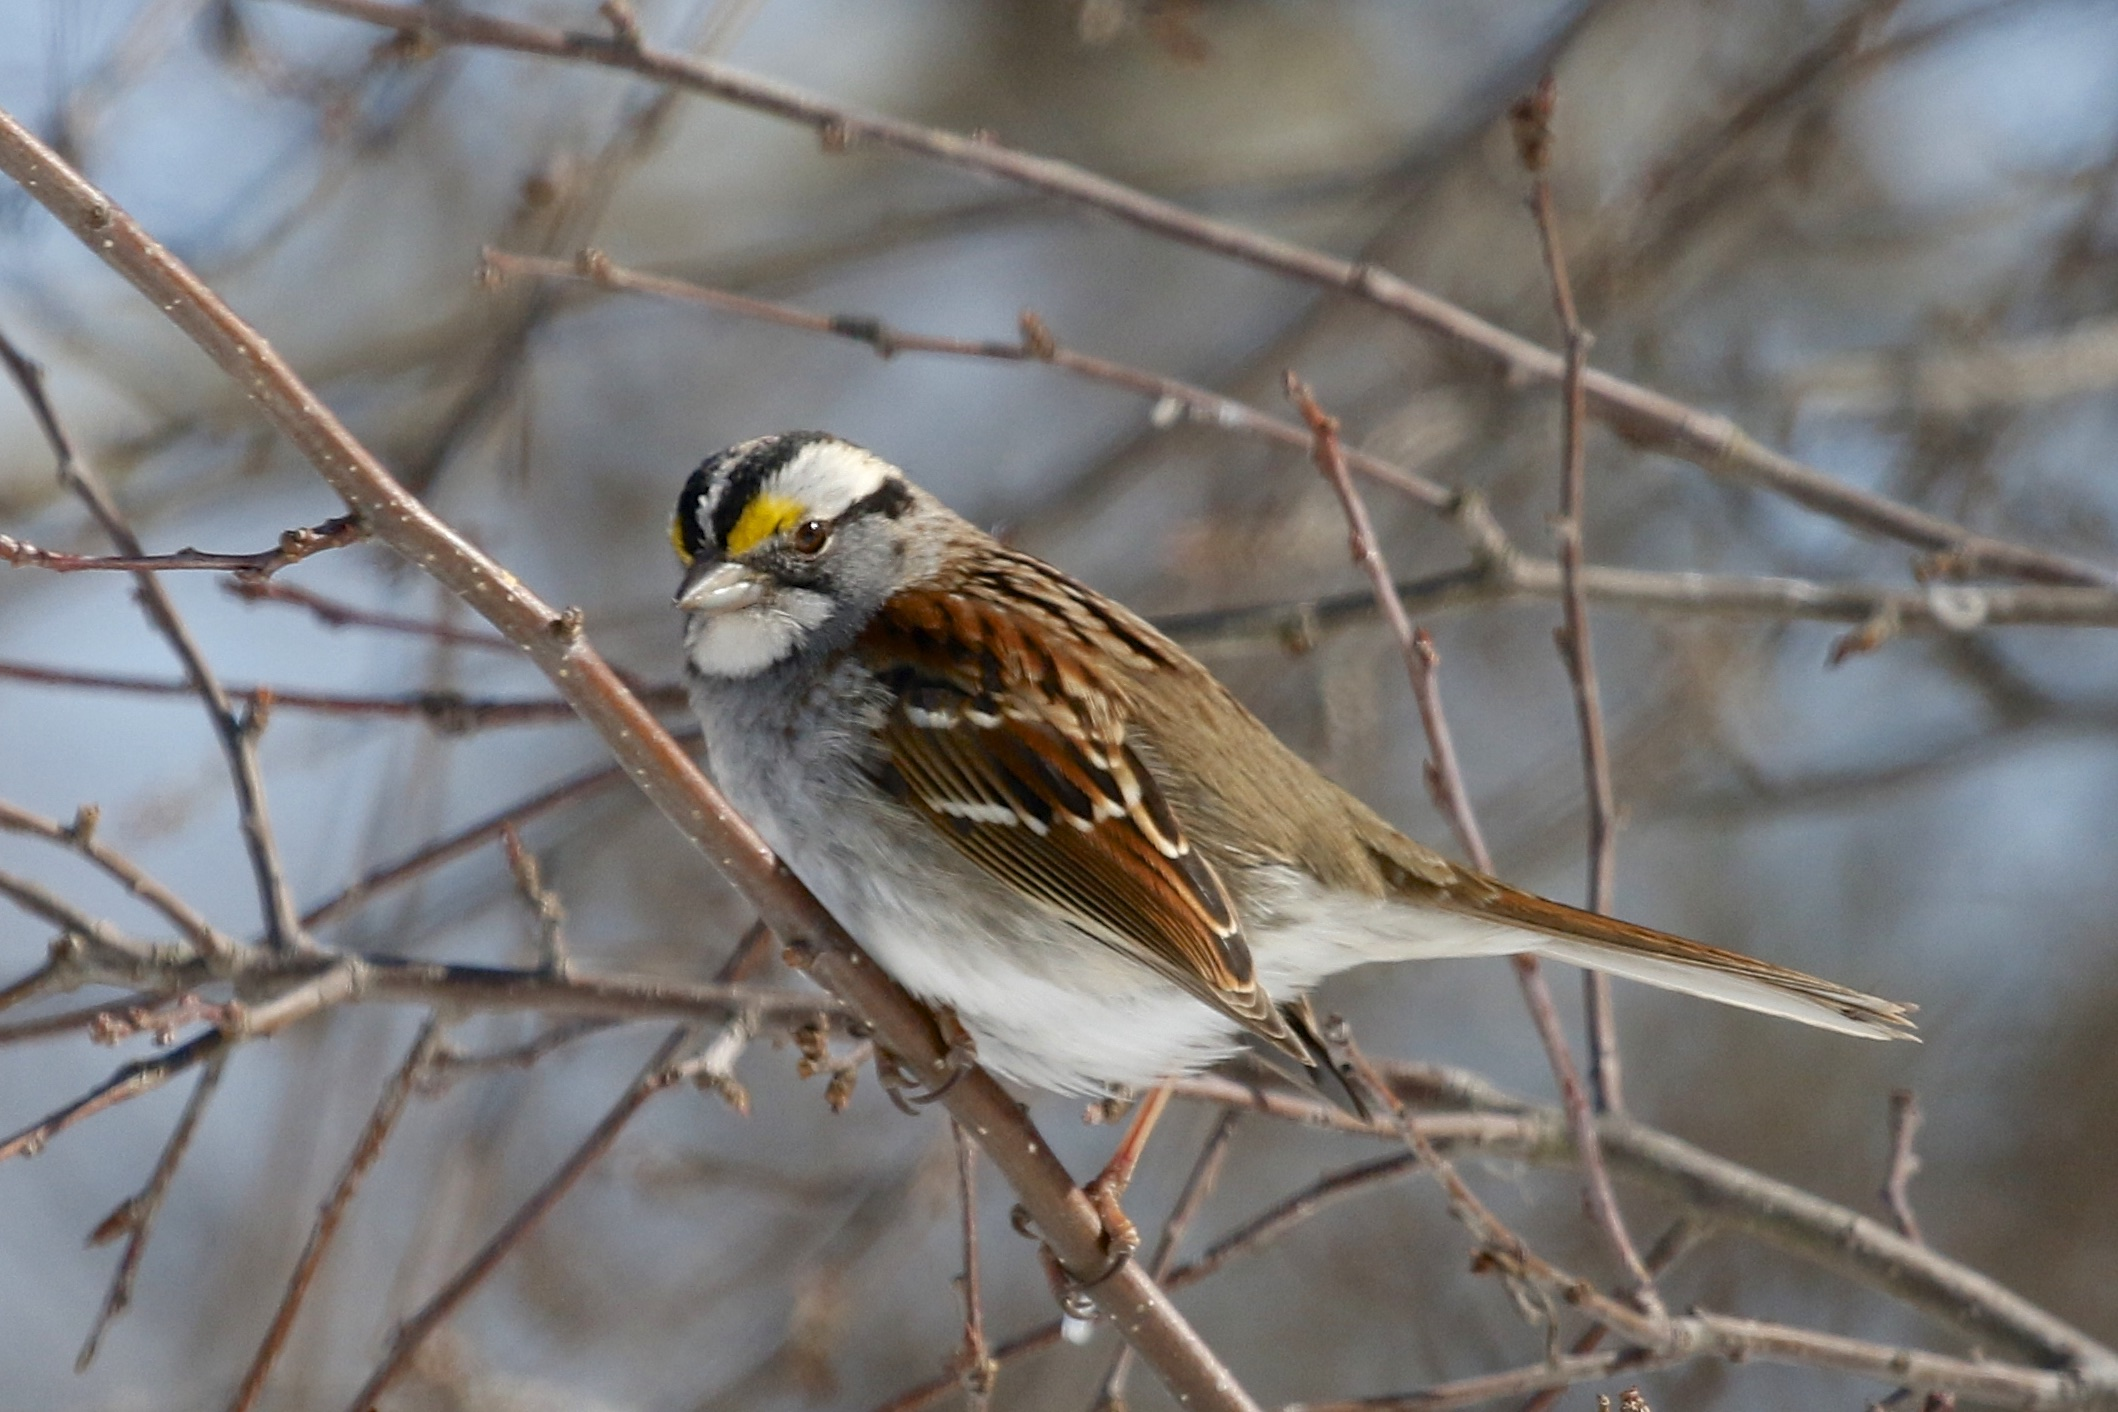 ~I haven't posted a sparrow photo in ages. This White-throated Sparrow was at the feeders next to the Edith G. Read Wildlife Sanctuary visitor center, 2/28/15.~